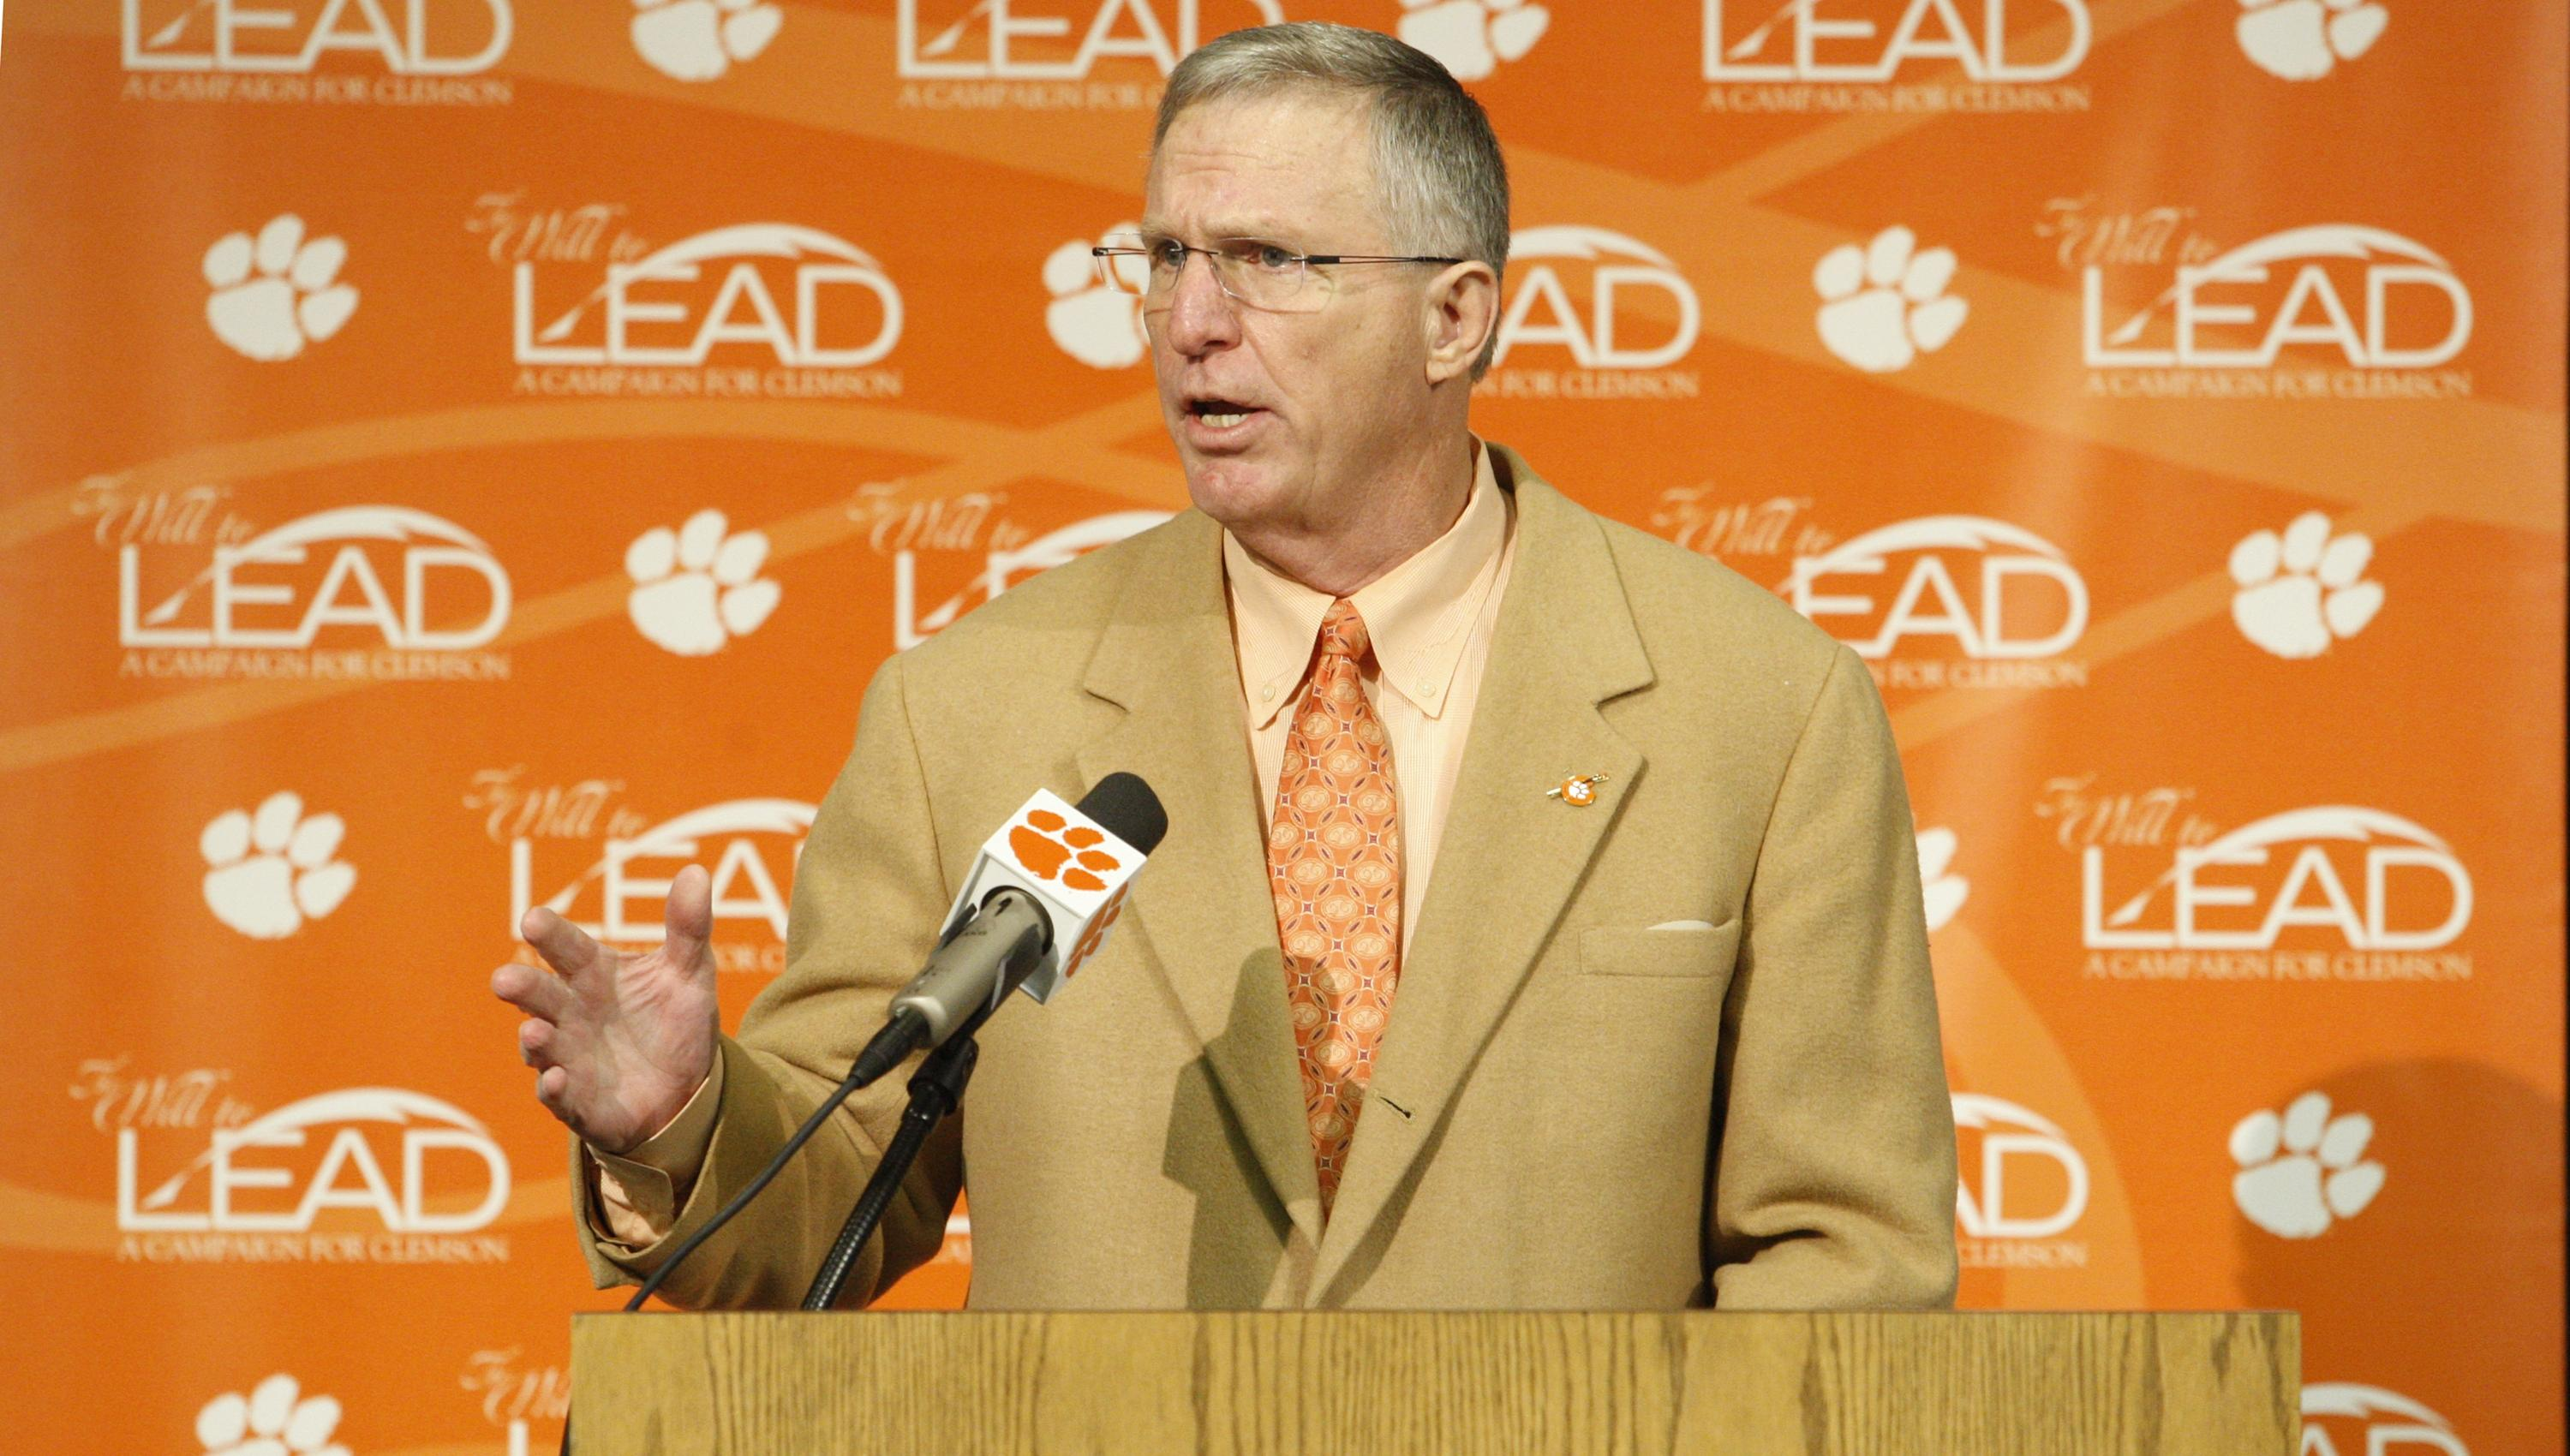 Phillips to be Inducted Into Chick-fil-A Bowl Hall of Fame